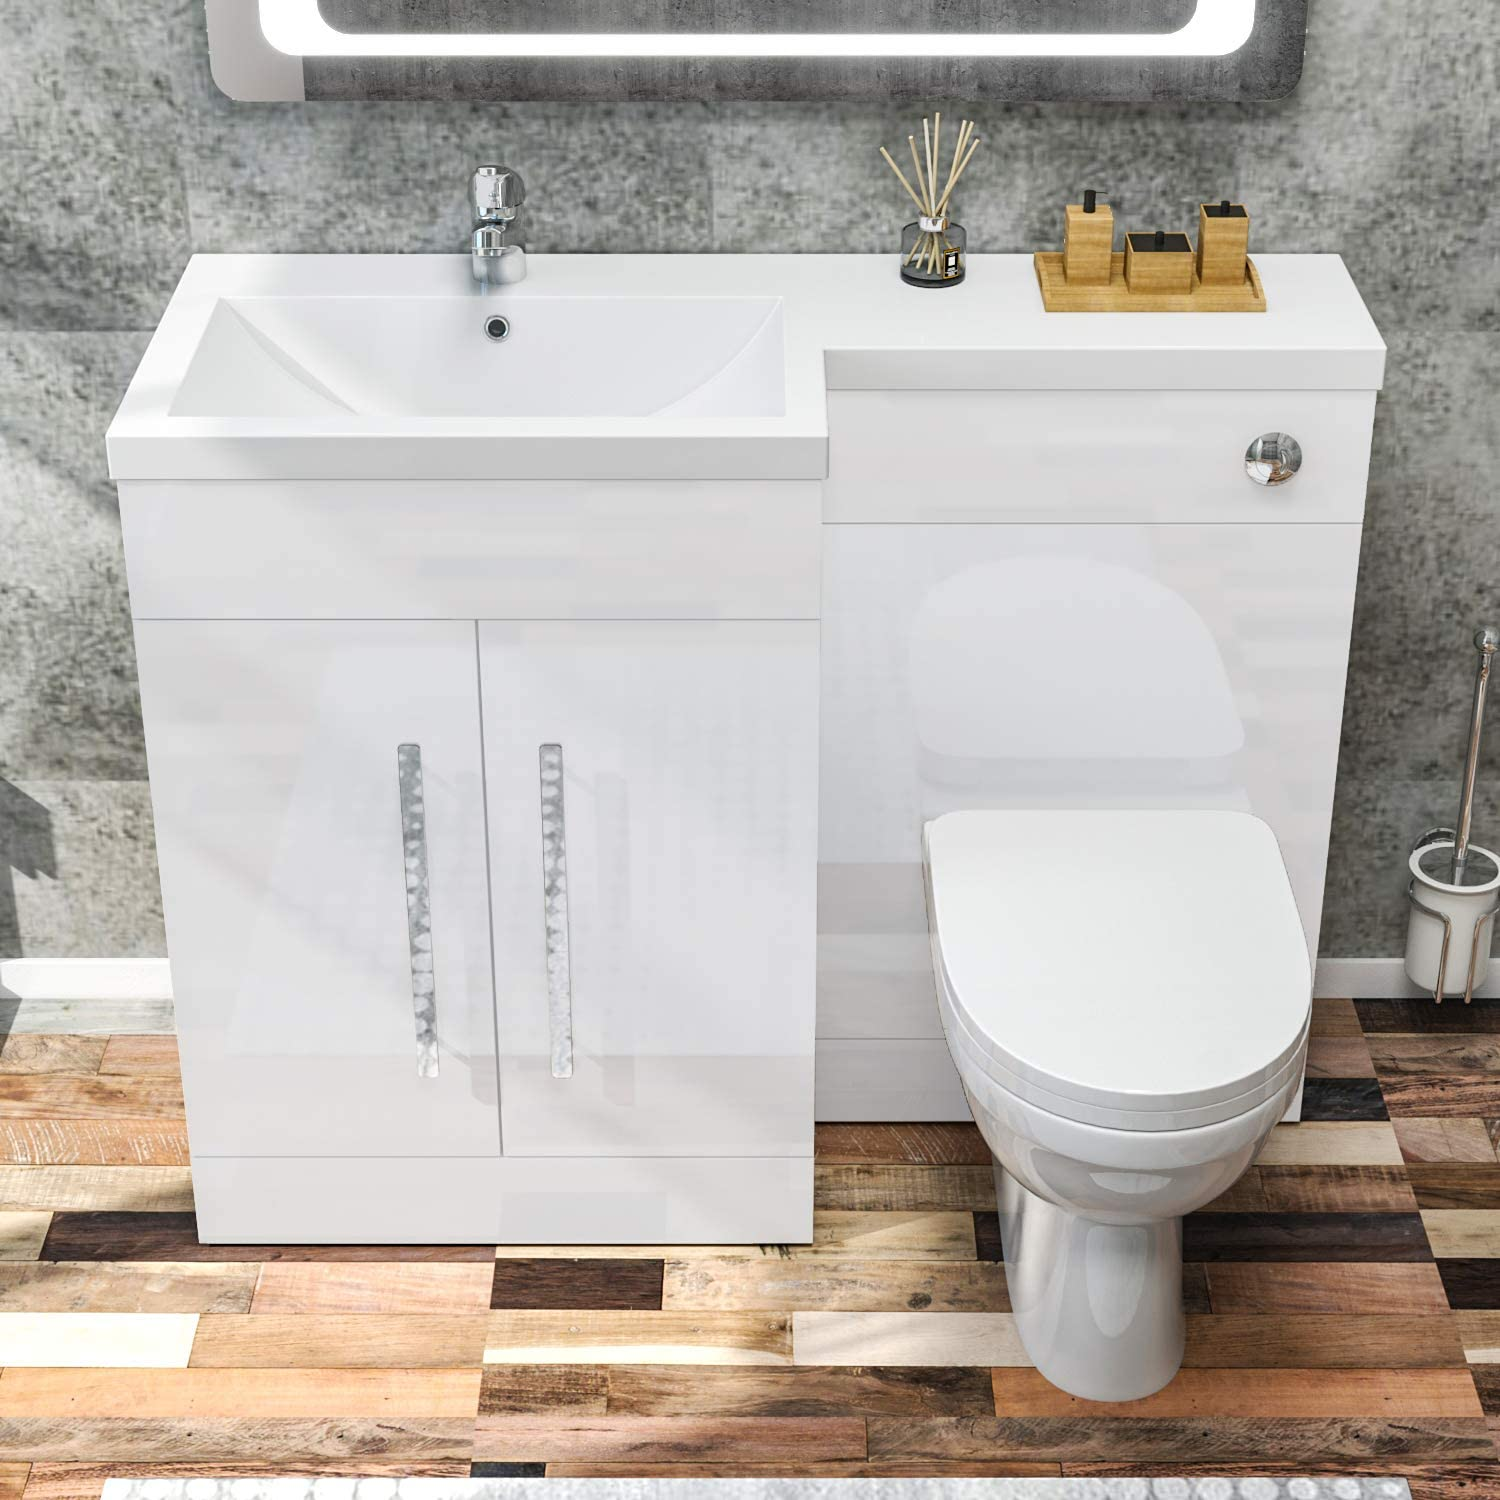 ELEGANT 1100mm L Shape Bathroom Vanity Sink Unit Furniture Storage,Left  Hand High Gloss White Vanity unit + Basin + Ceramic D shaped Toilet with  Concealed Cistern: Amazon.co.uk: Kitchen & Home